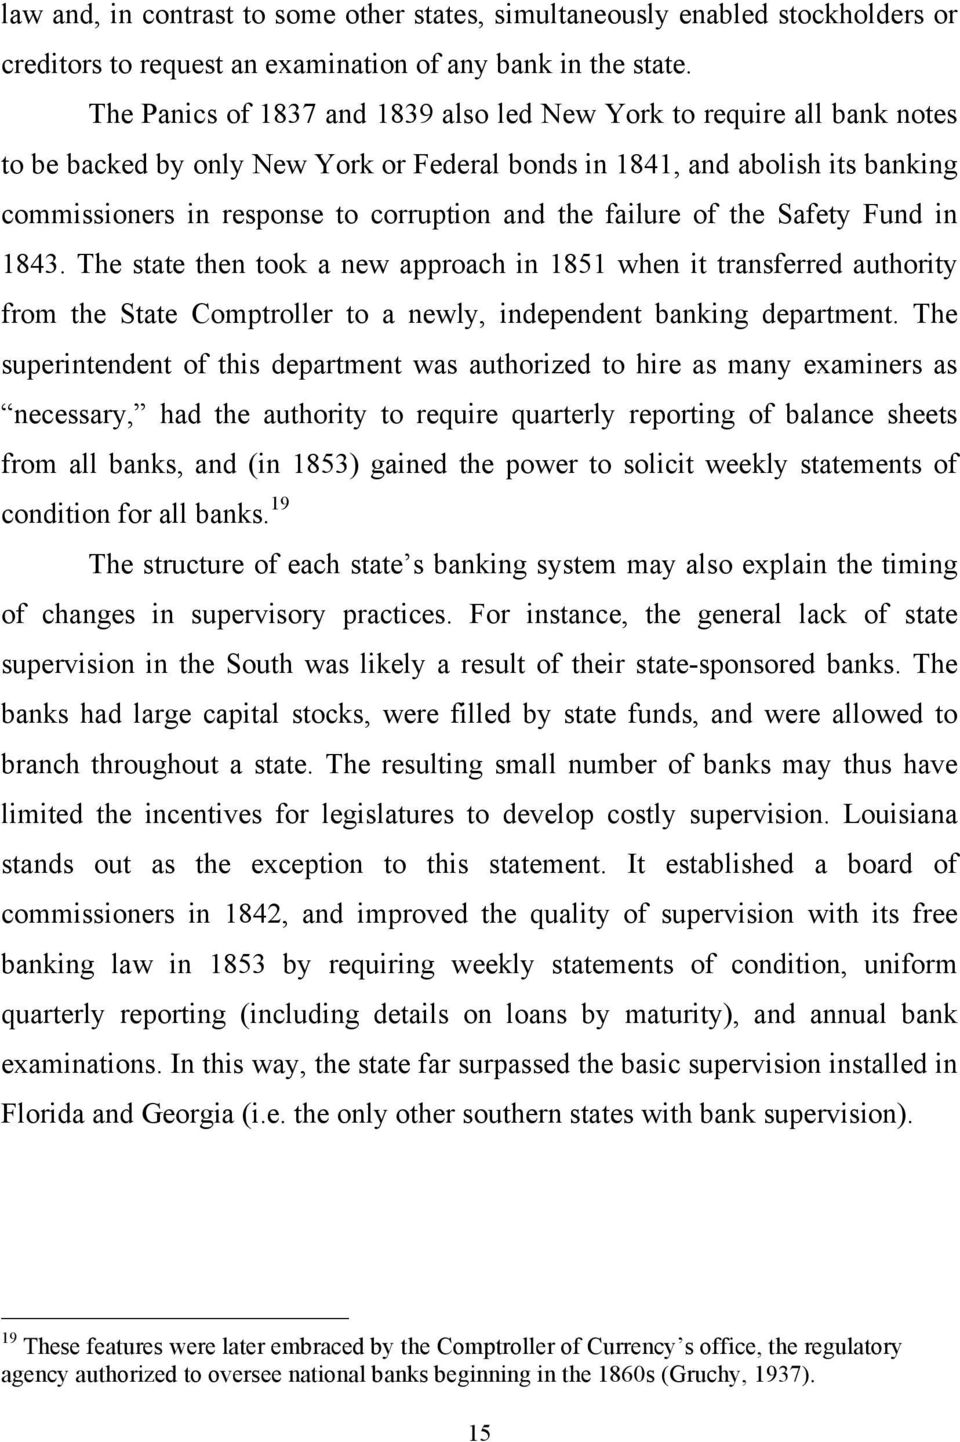 failure of the Safety Fund in 1843. The state then took a new approach in 1851 when it transferred authority from the State Comptroller to a newly, independent banking department.